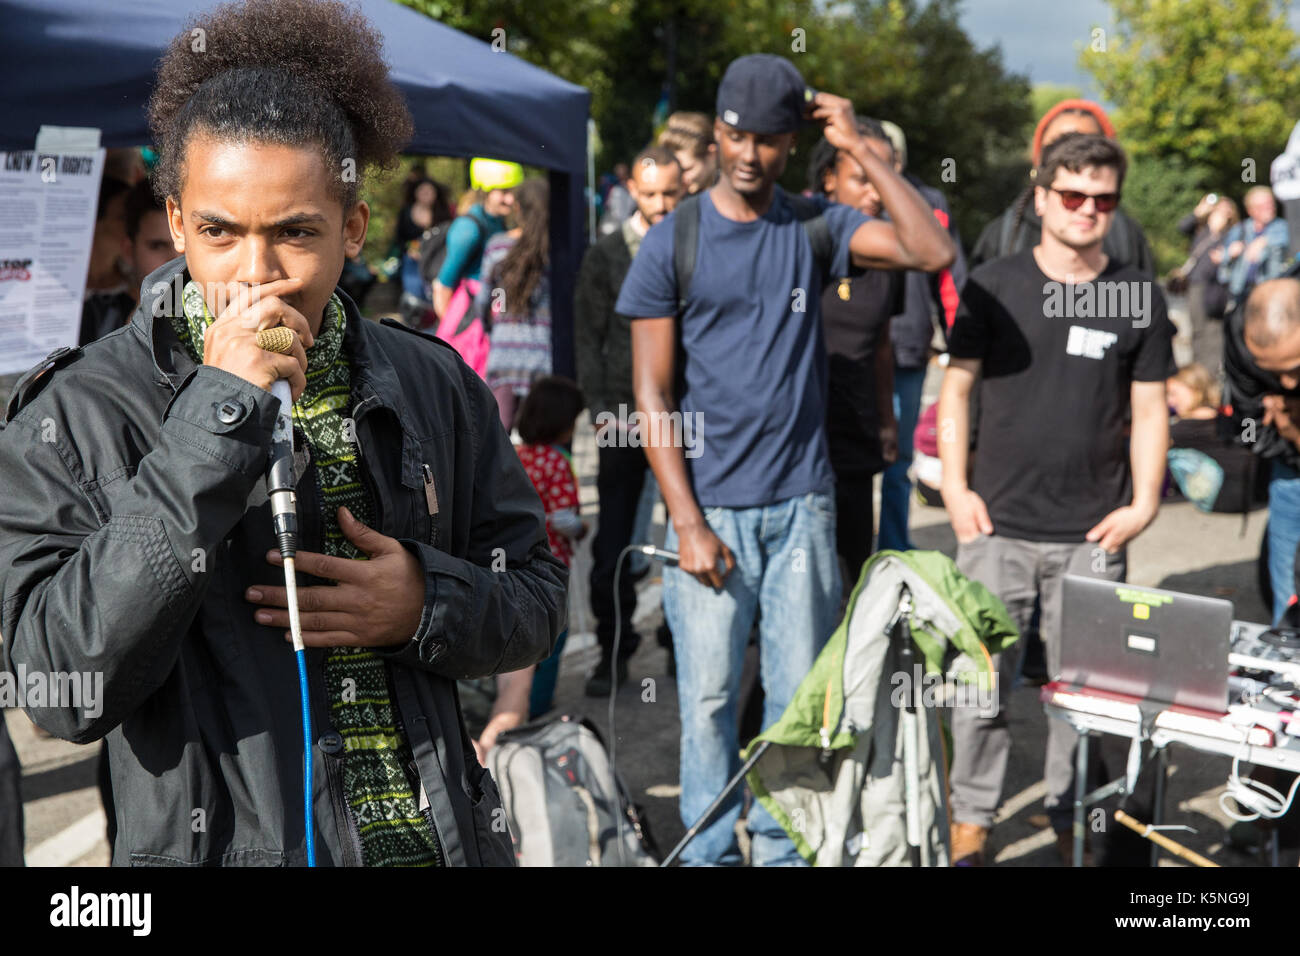 London, UK. 9th September, 2017. Rapper Logic's People's Army perform for activists from many different campaign and faith groups protesting outside the ExCel Centre against the arms trade and the arms fair to be held at the venue next week. DSEI is the world's largest arms fair and military delegations invited by the British government include states named by the Foreign Office as a 'human rights priority', namely Bahrain, Colombia, Egypt, Pakistan and Saudi Arabia. Credit: Mark Kerrison/Alamy Live News - Stock Image